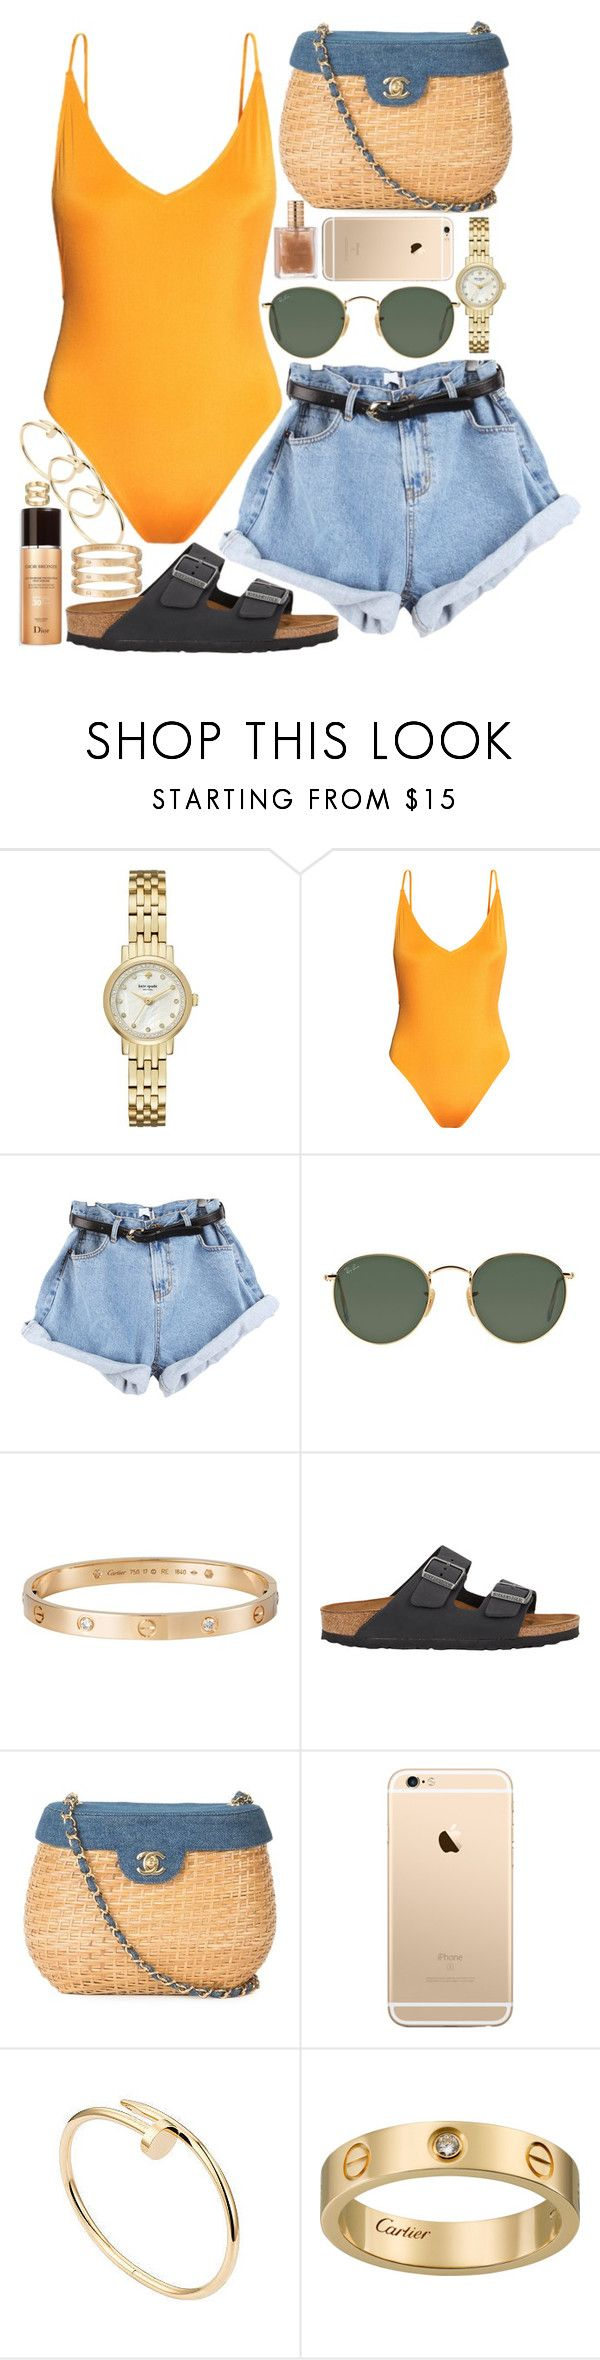 """inspired pool party outfit"" by crisarranz on Polyvore featuring Kate Spade, H&M, Ray-Ban, Cartier, Birkenstock and Chanel"